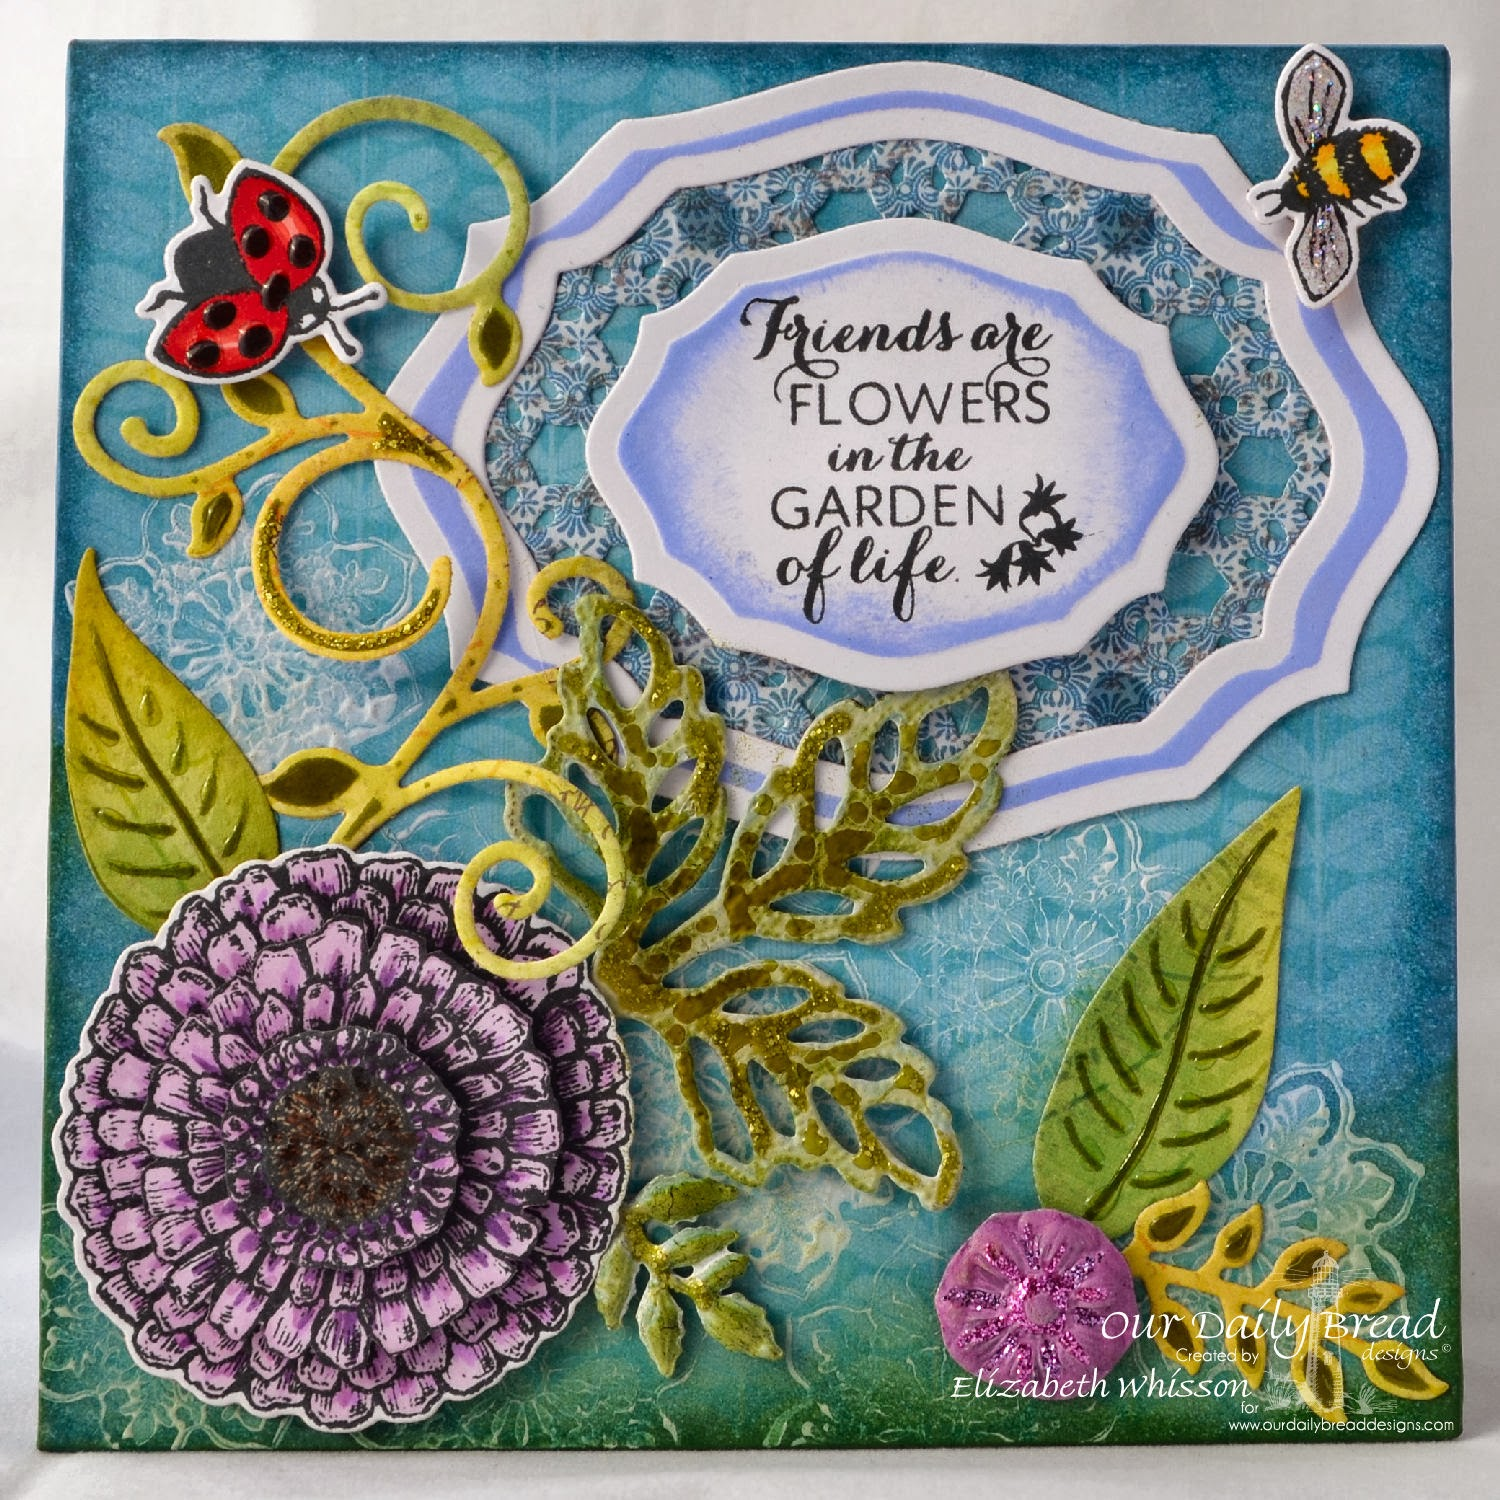 Elizabeth Whisson, Our Daily Bread Designs, Zinnia, Ornate Borders and Flowers, ODBD Custom Elegant Oval Dies, ODBD Custom Zinnia and Leaves Dies, ODBD Custom Fancy Foliage Dies, ODBD Custom Daisy Chain Die, ODBD Blooming Garden Collection